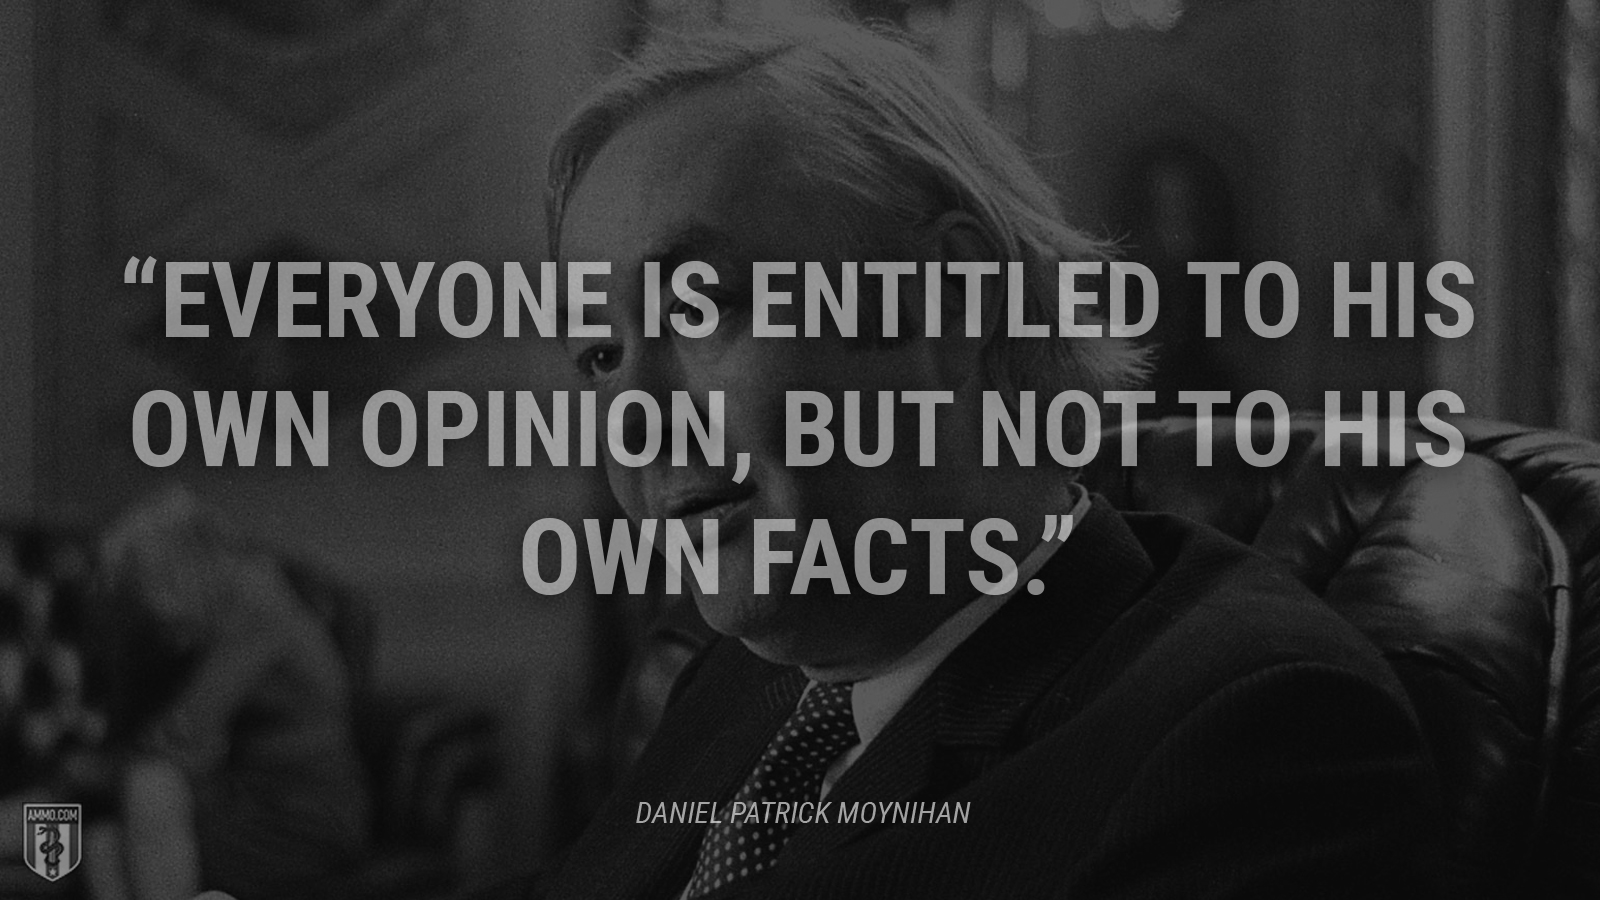 """Everyone is entitled to his own opinion, but not to his own facts."" - Daniel Patrick Moynihan"